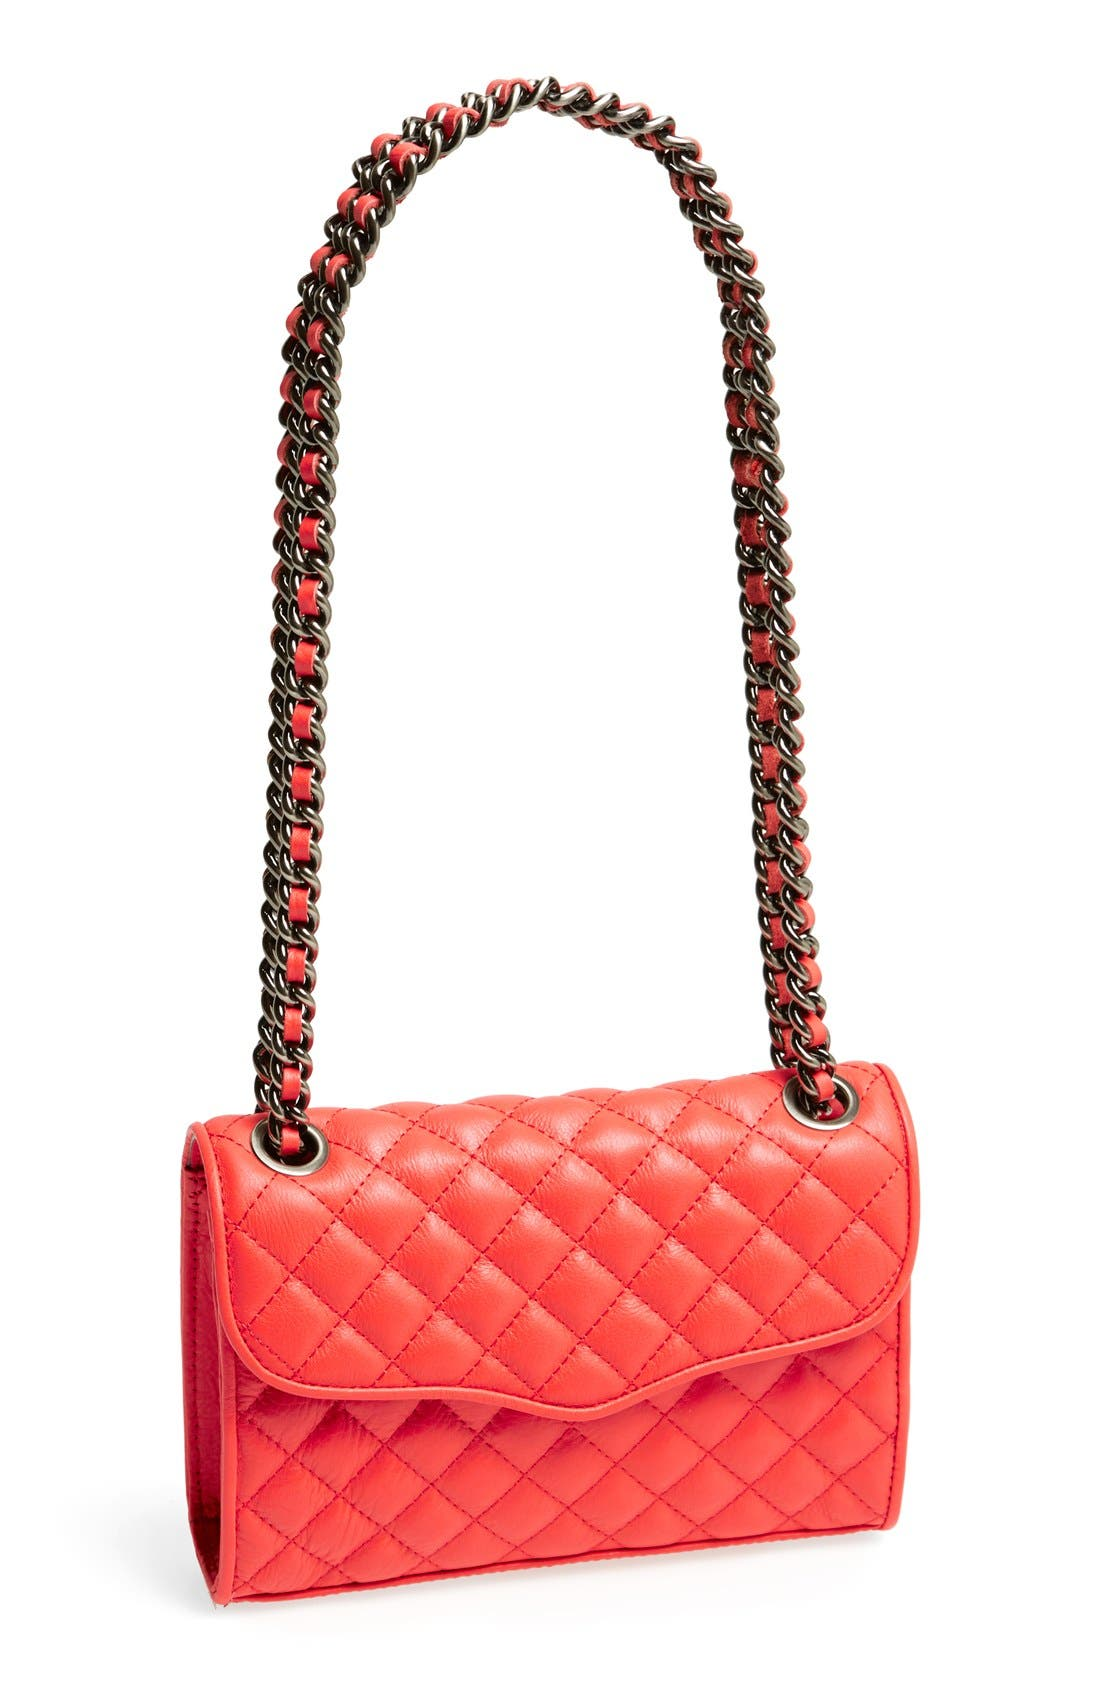 Main Image - Rebecca Minkoff 'Mini Affair' Convertible Crossbody Bag